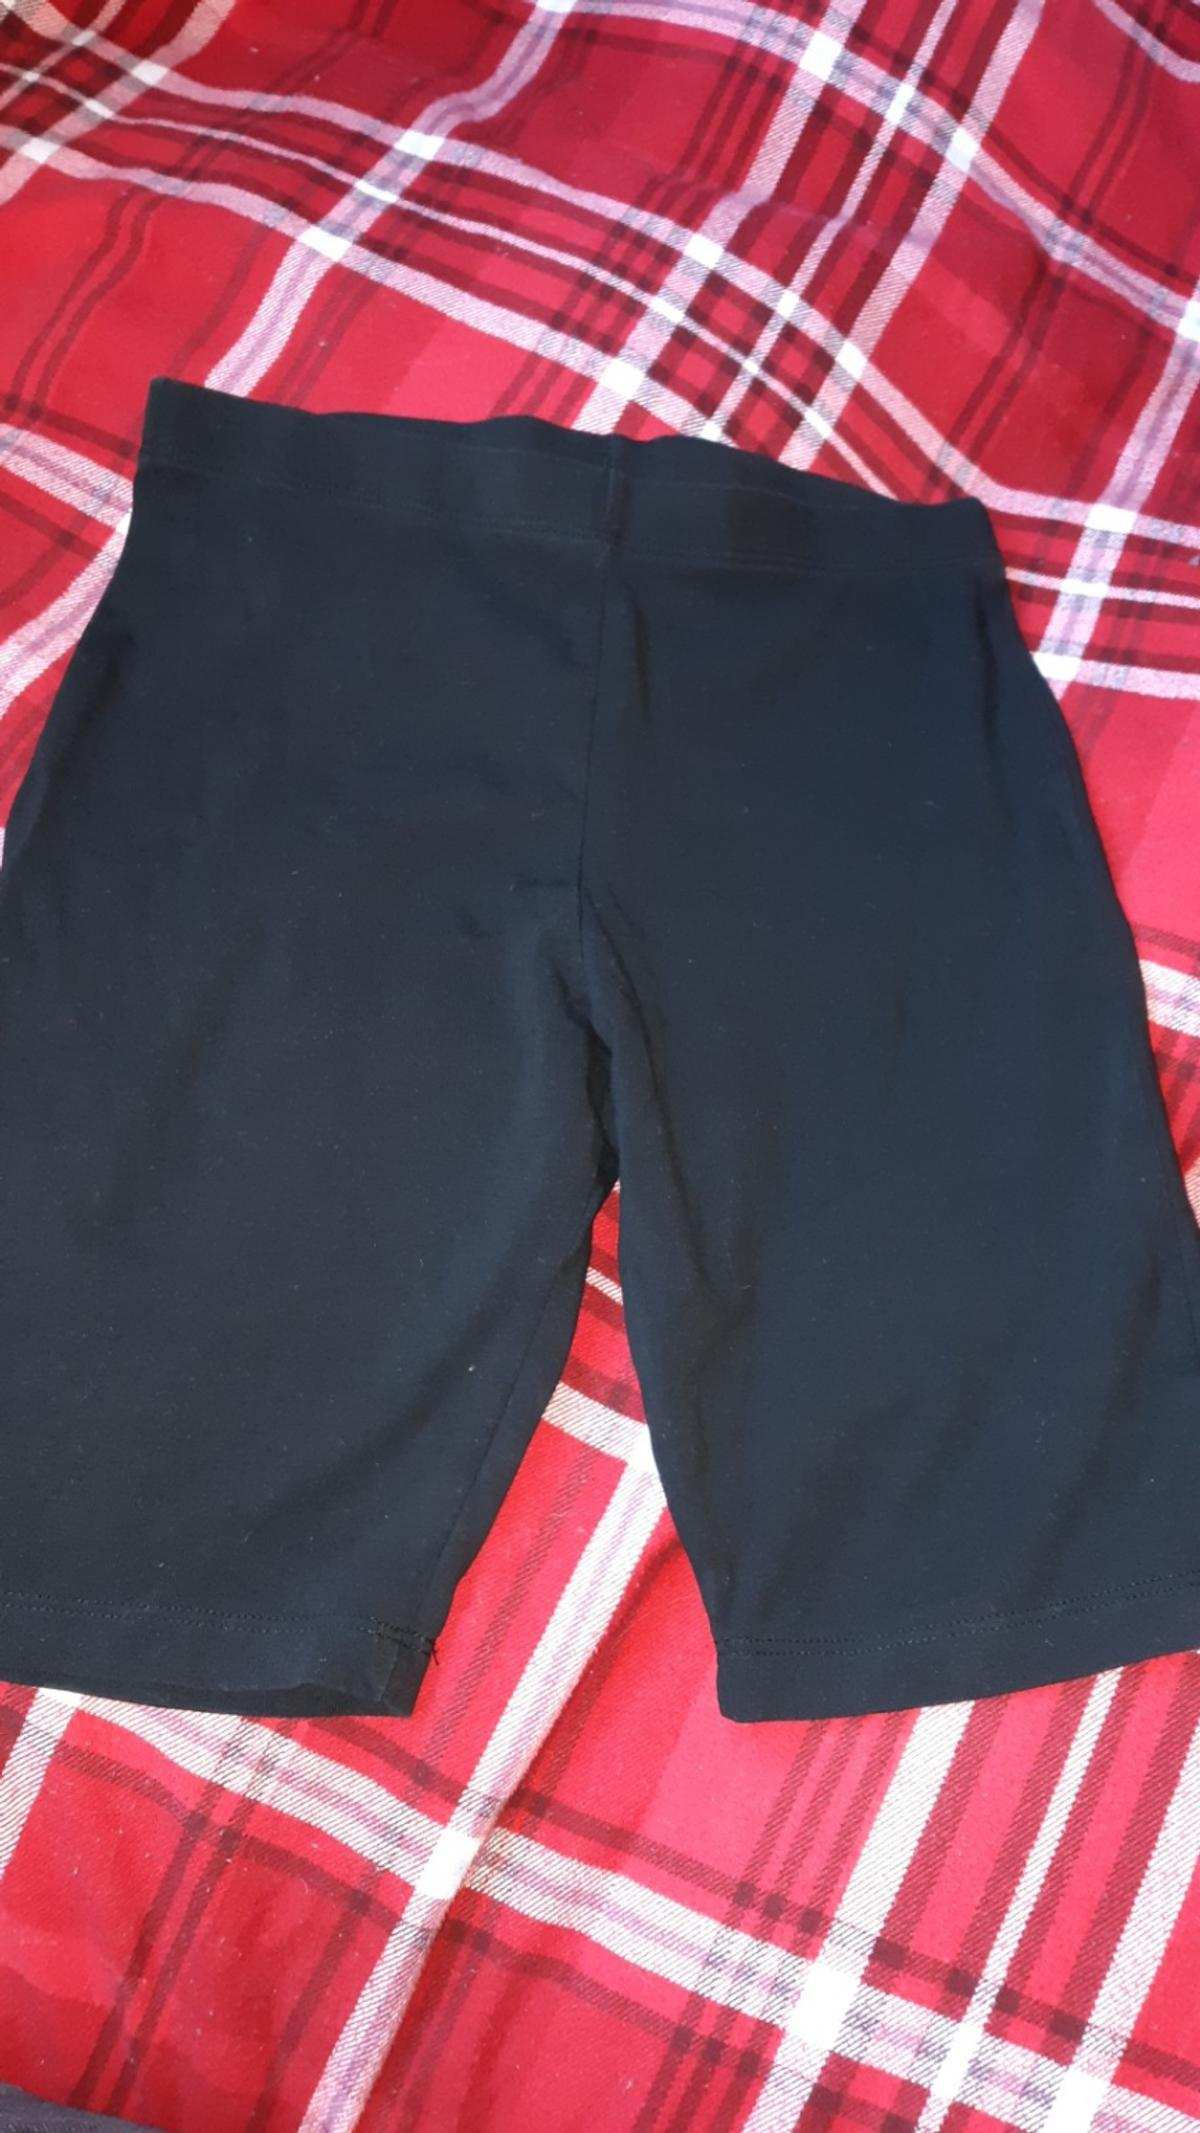 Groovy Black Girls Cycling Shorts In Ng19 Nottinghamshire For 0 50 For Natural Hairstyles Runnerswayorg